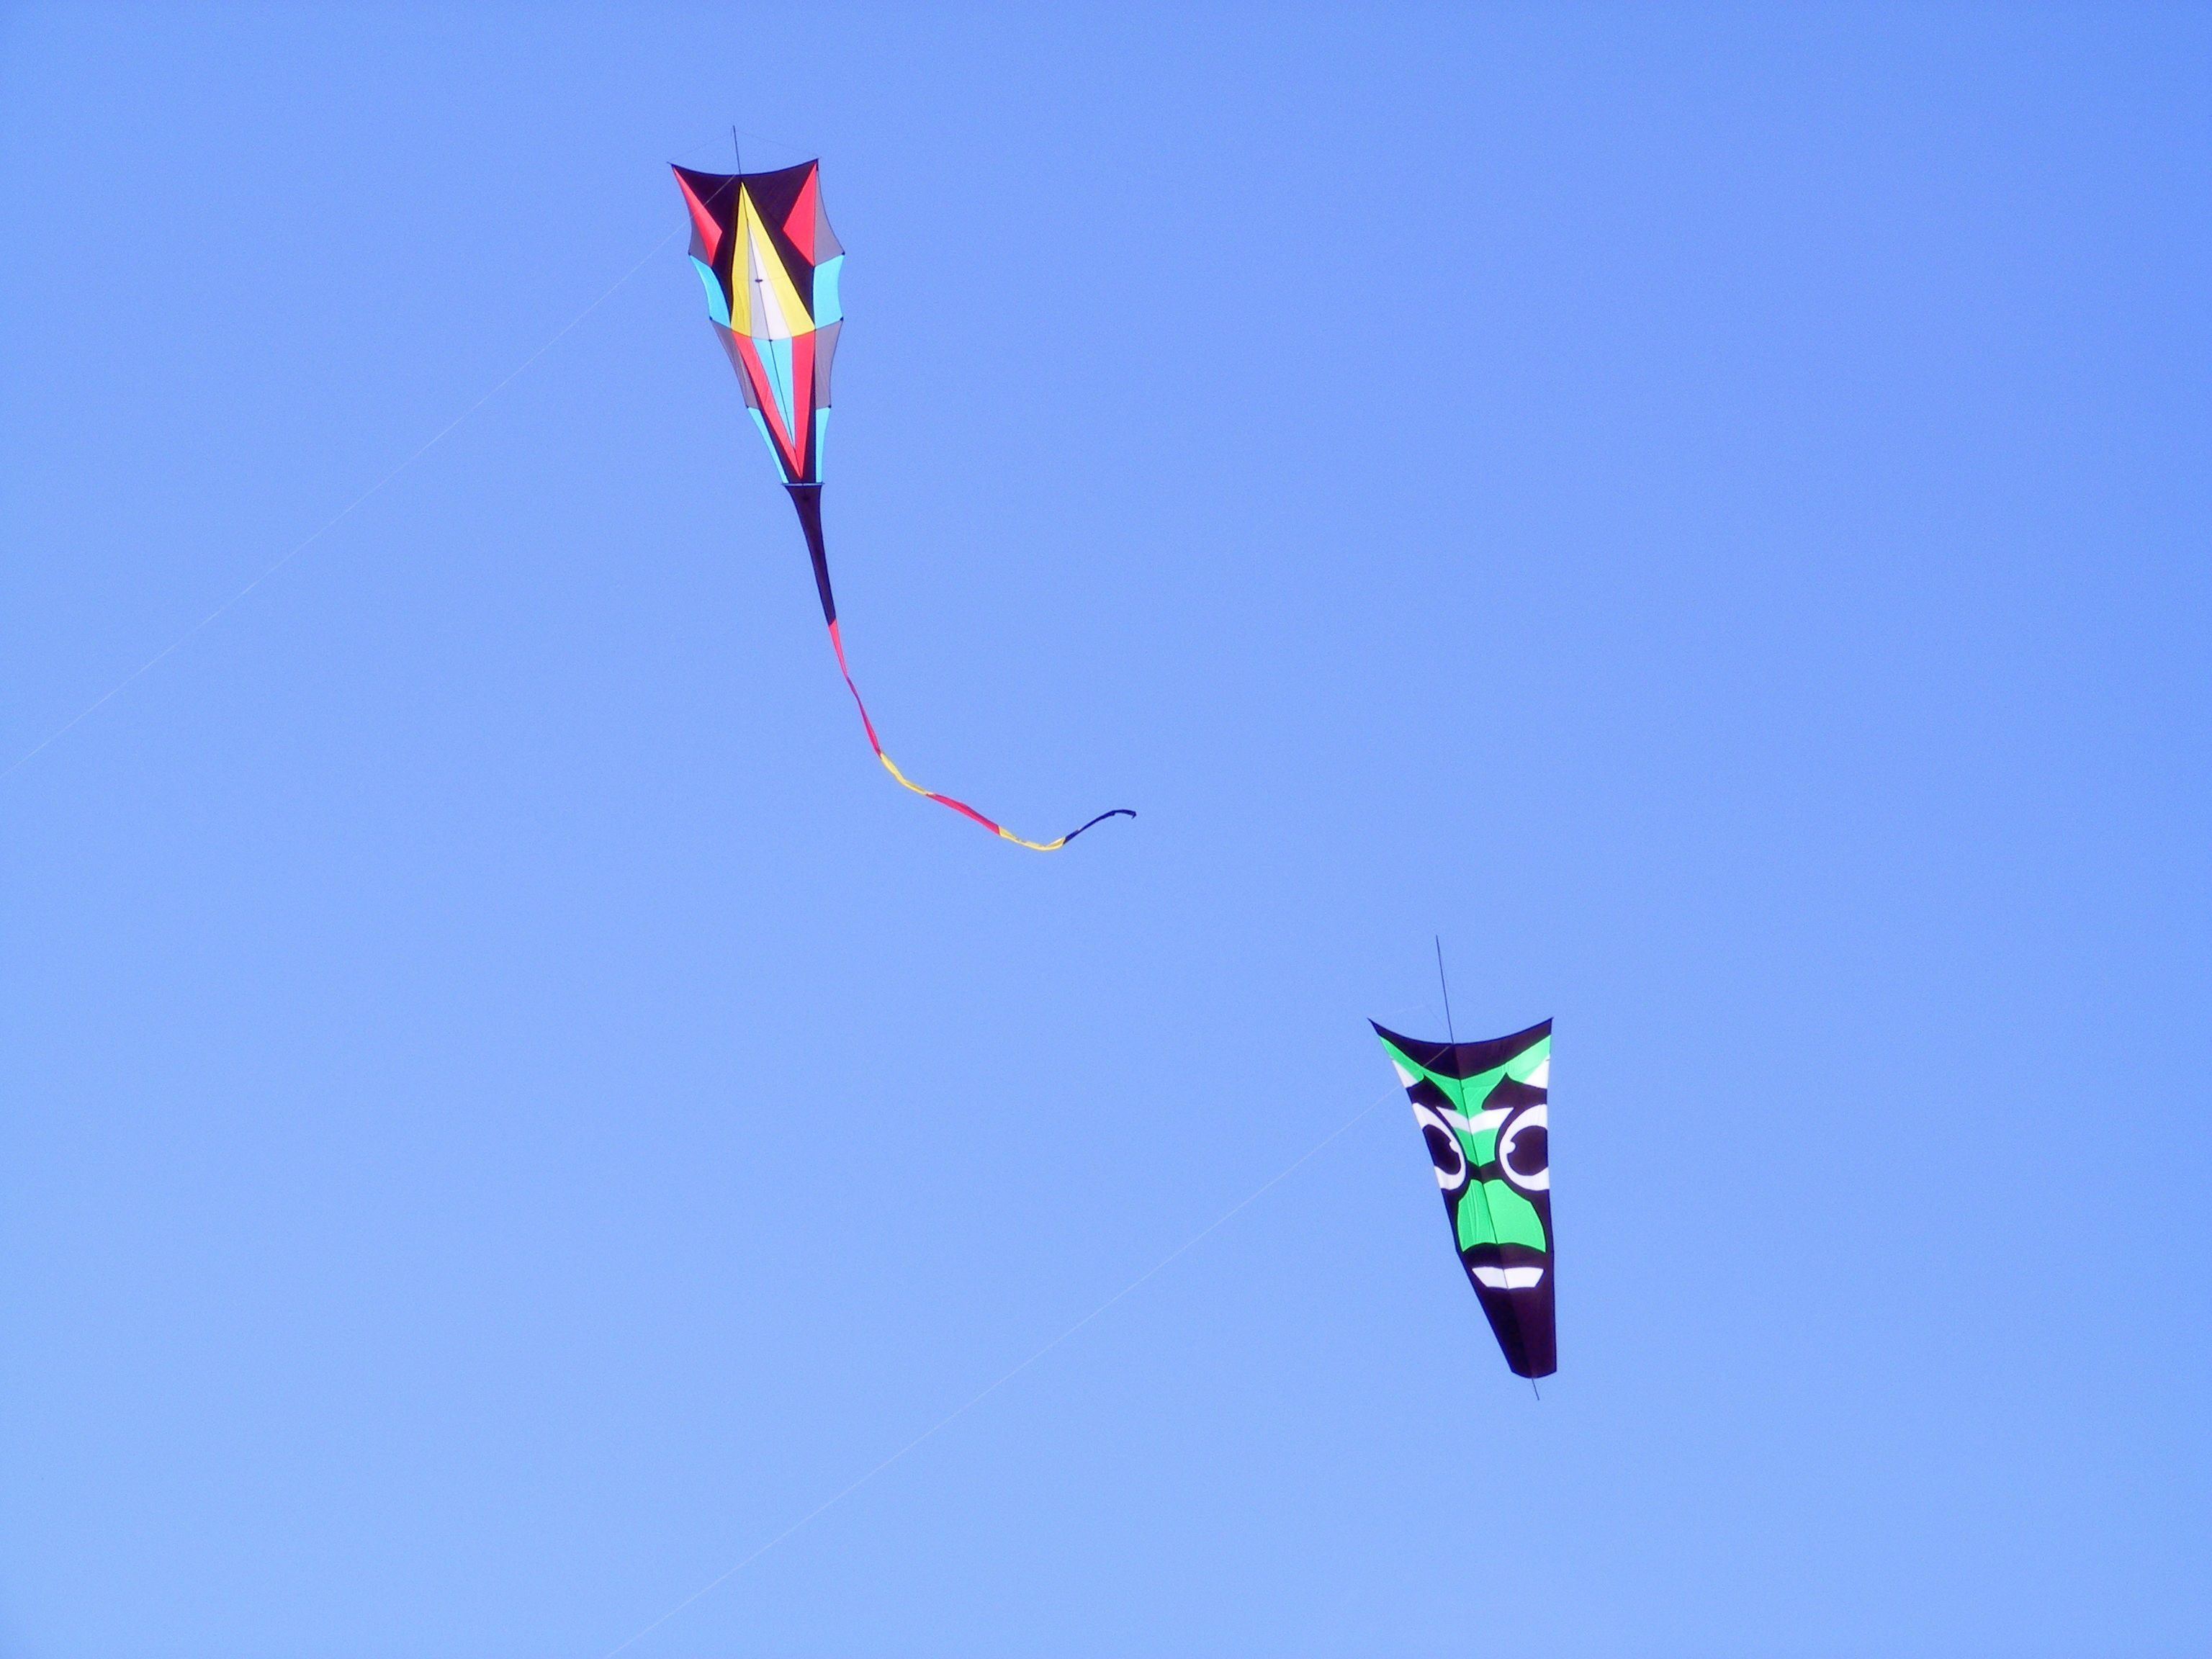 At North Coast Stunt Kite Games 2012